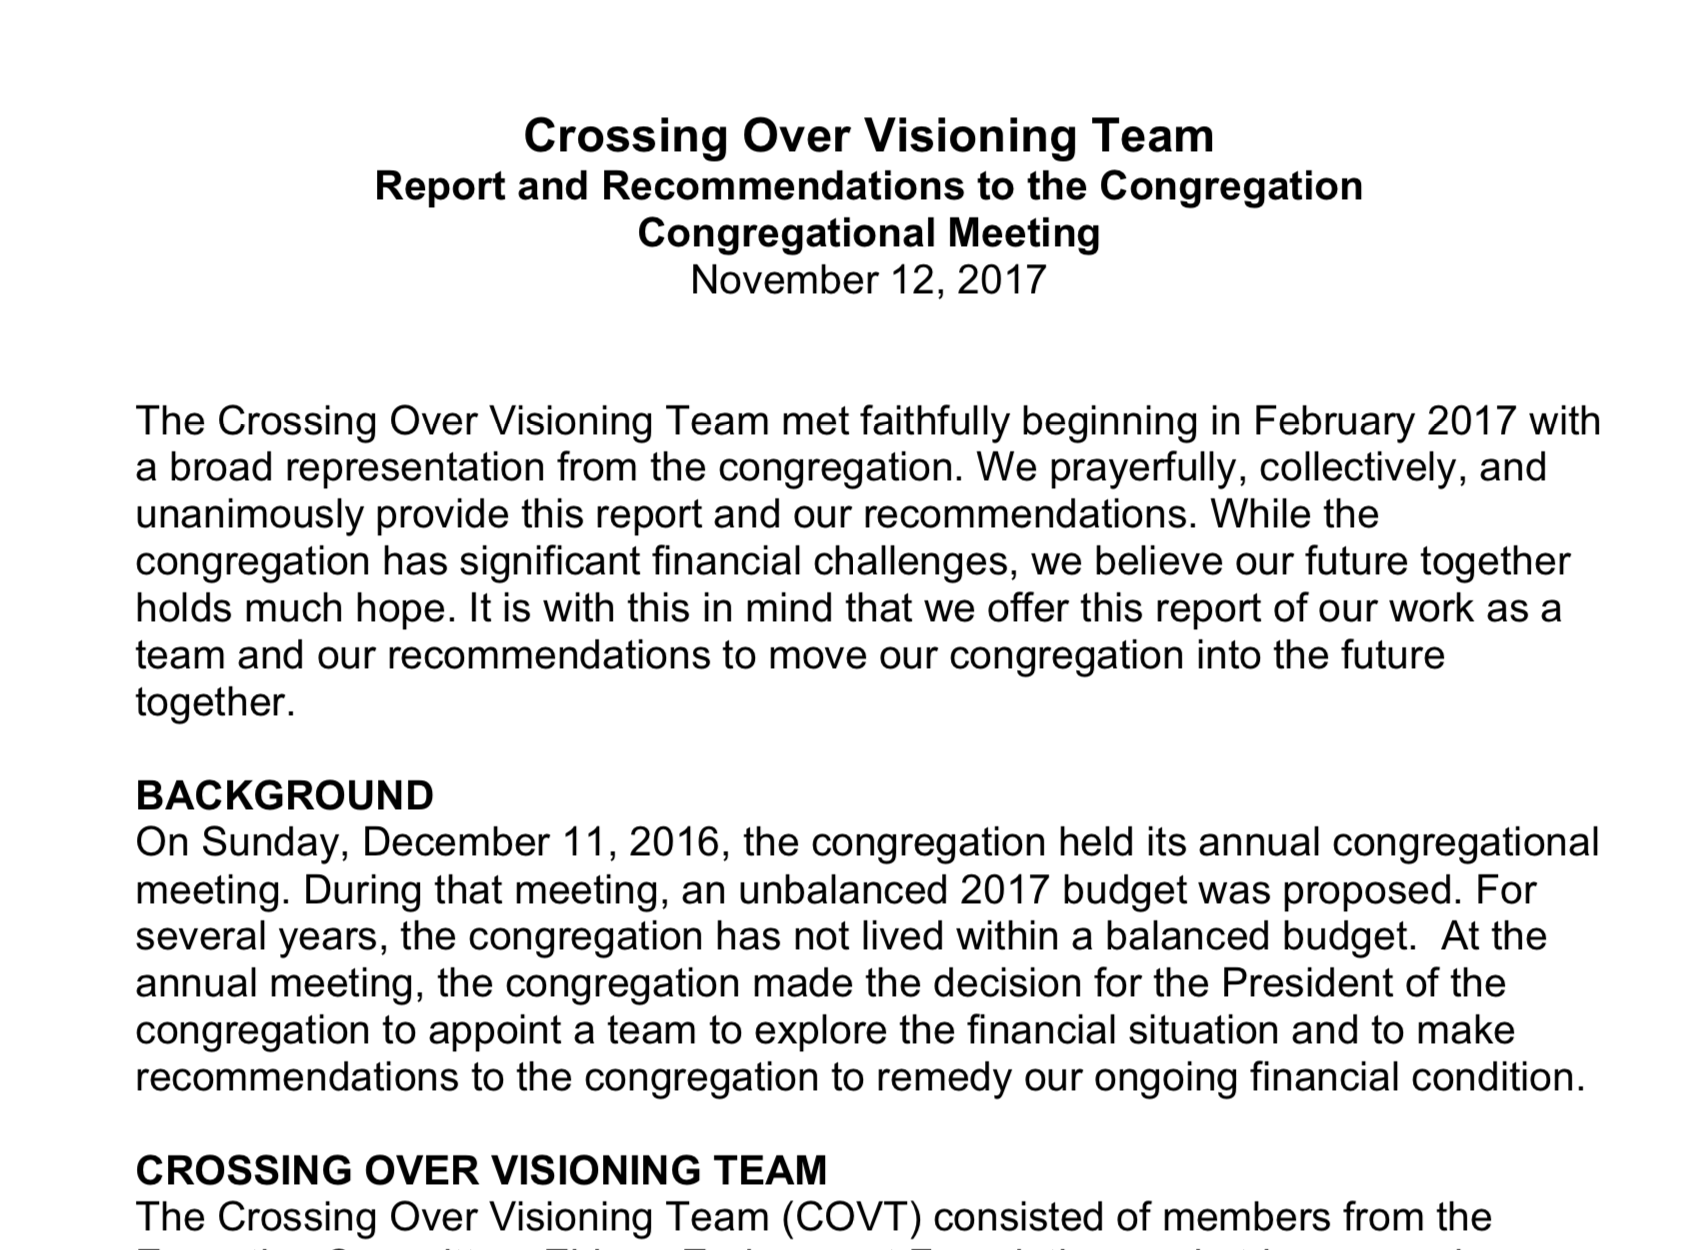 Team Recommendation: Crossing Over Vision Team Report & Recommendations